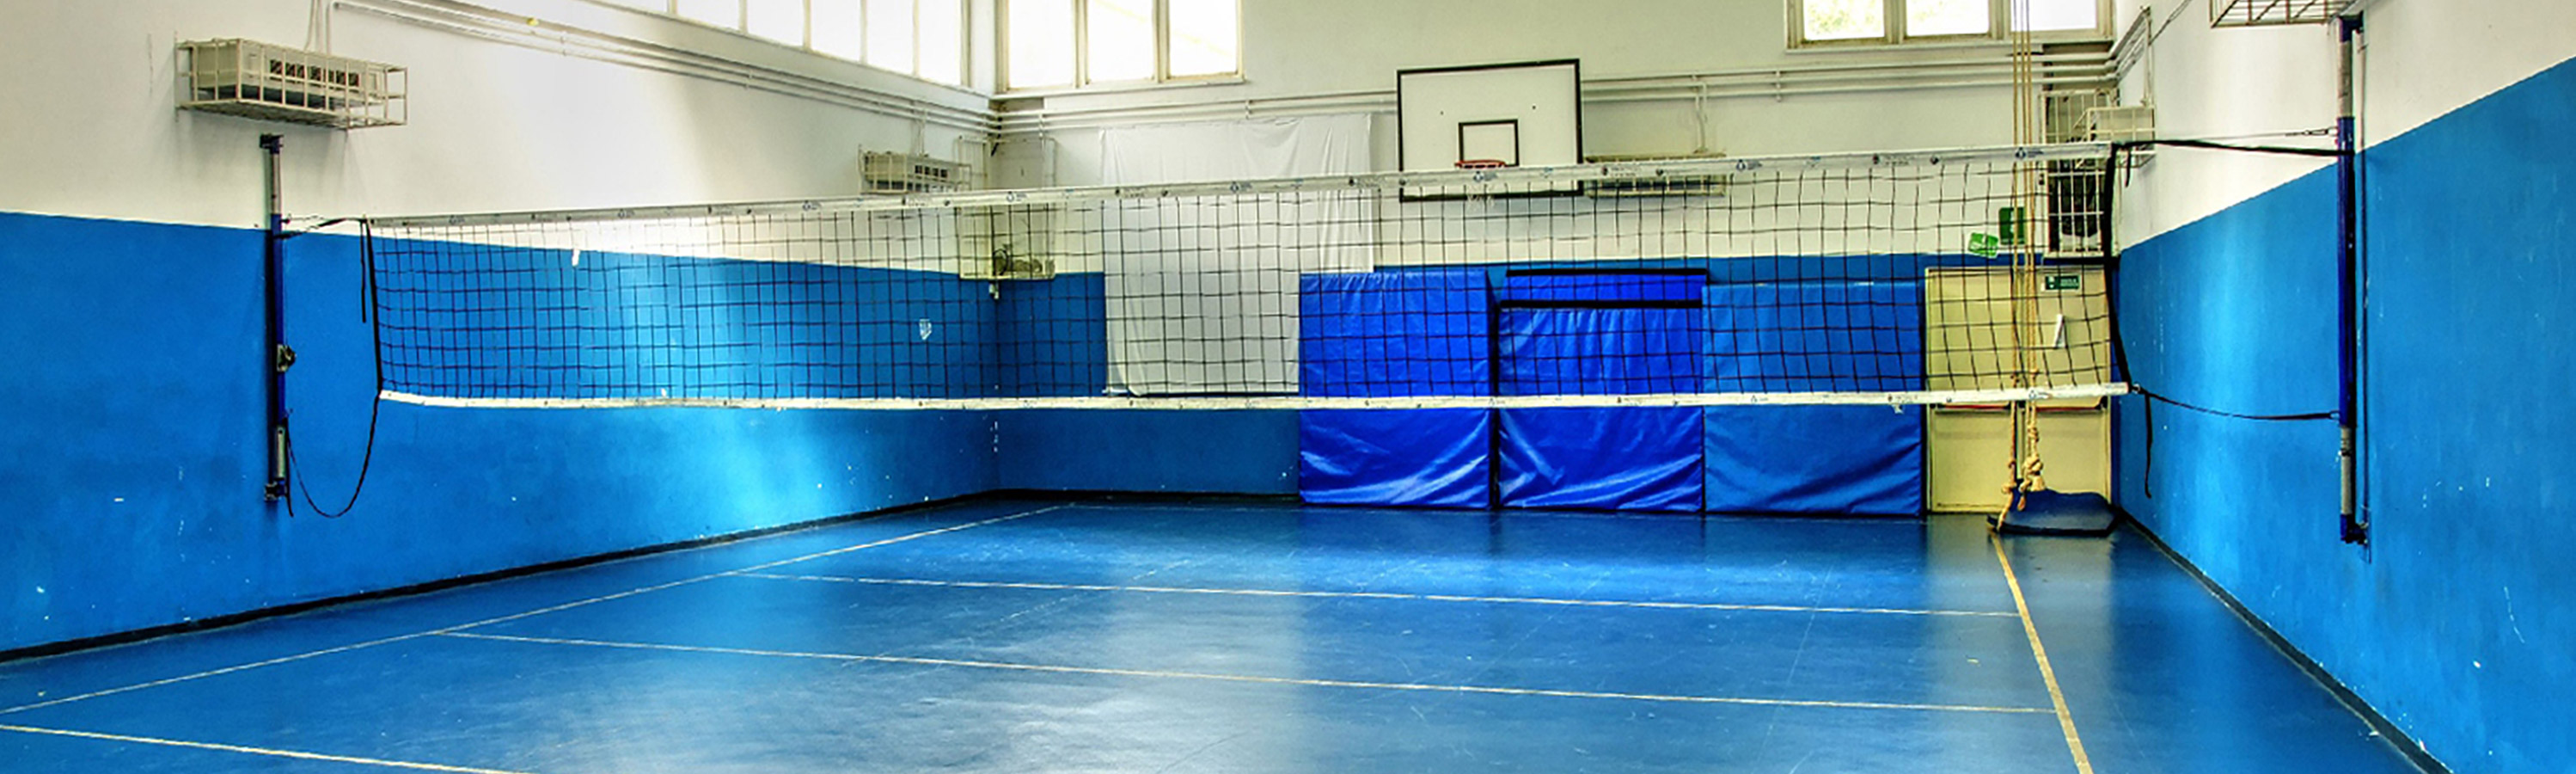 Palestra, Volley, Basket